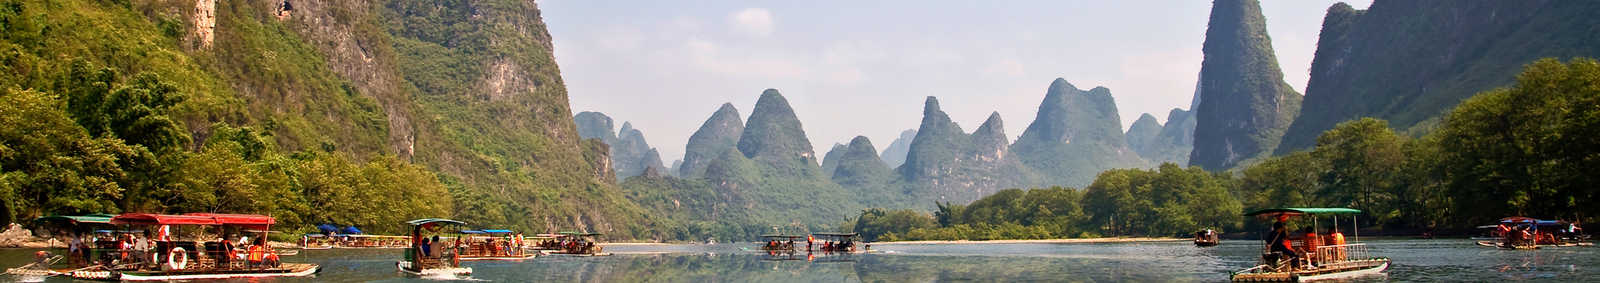 Bamboo rafts on the Li River between Guilin and Yangshuo, Asia